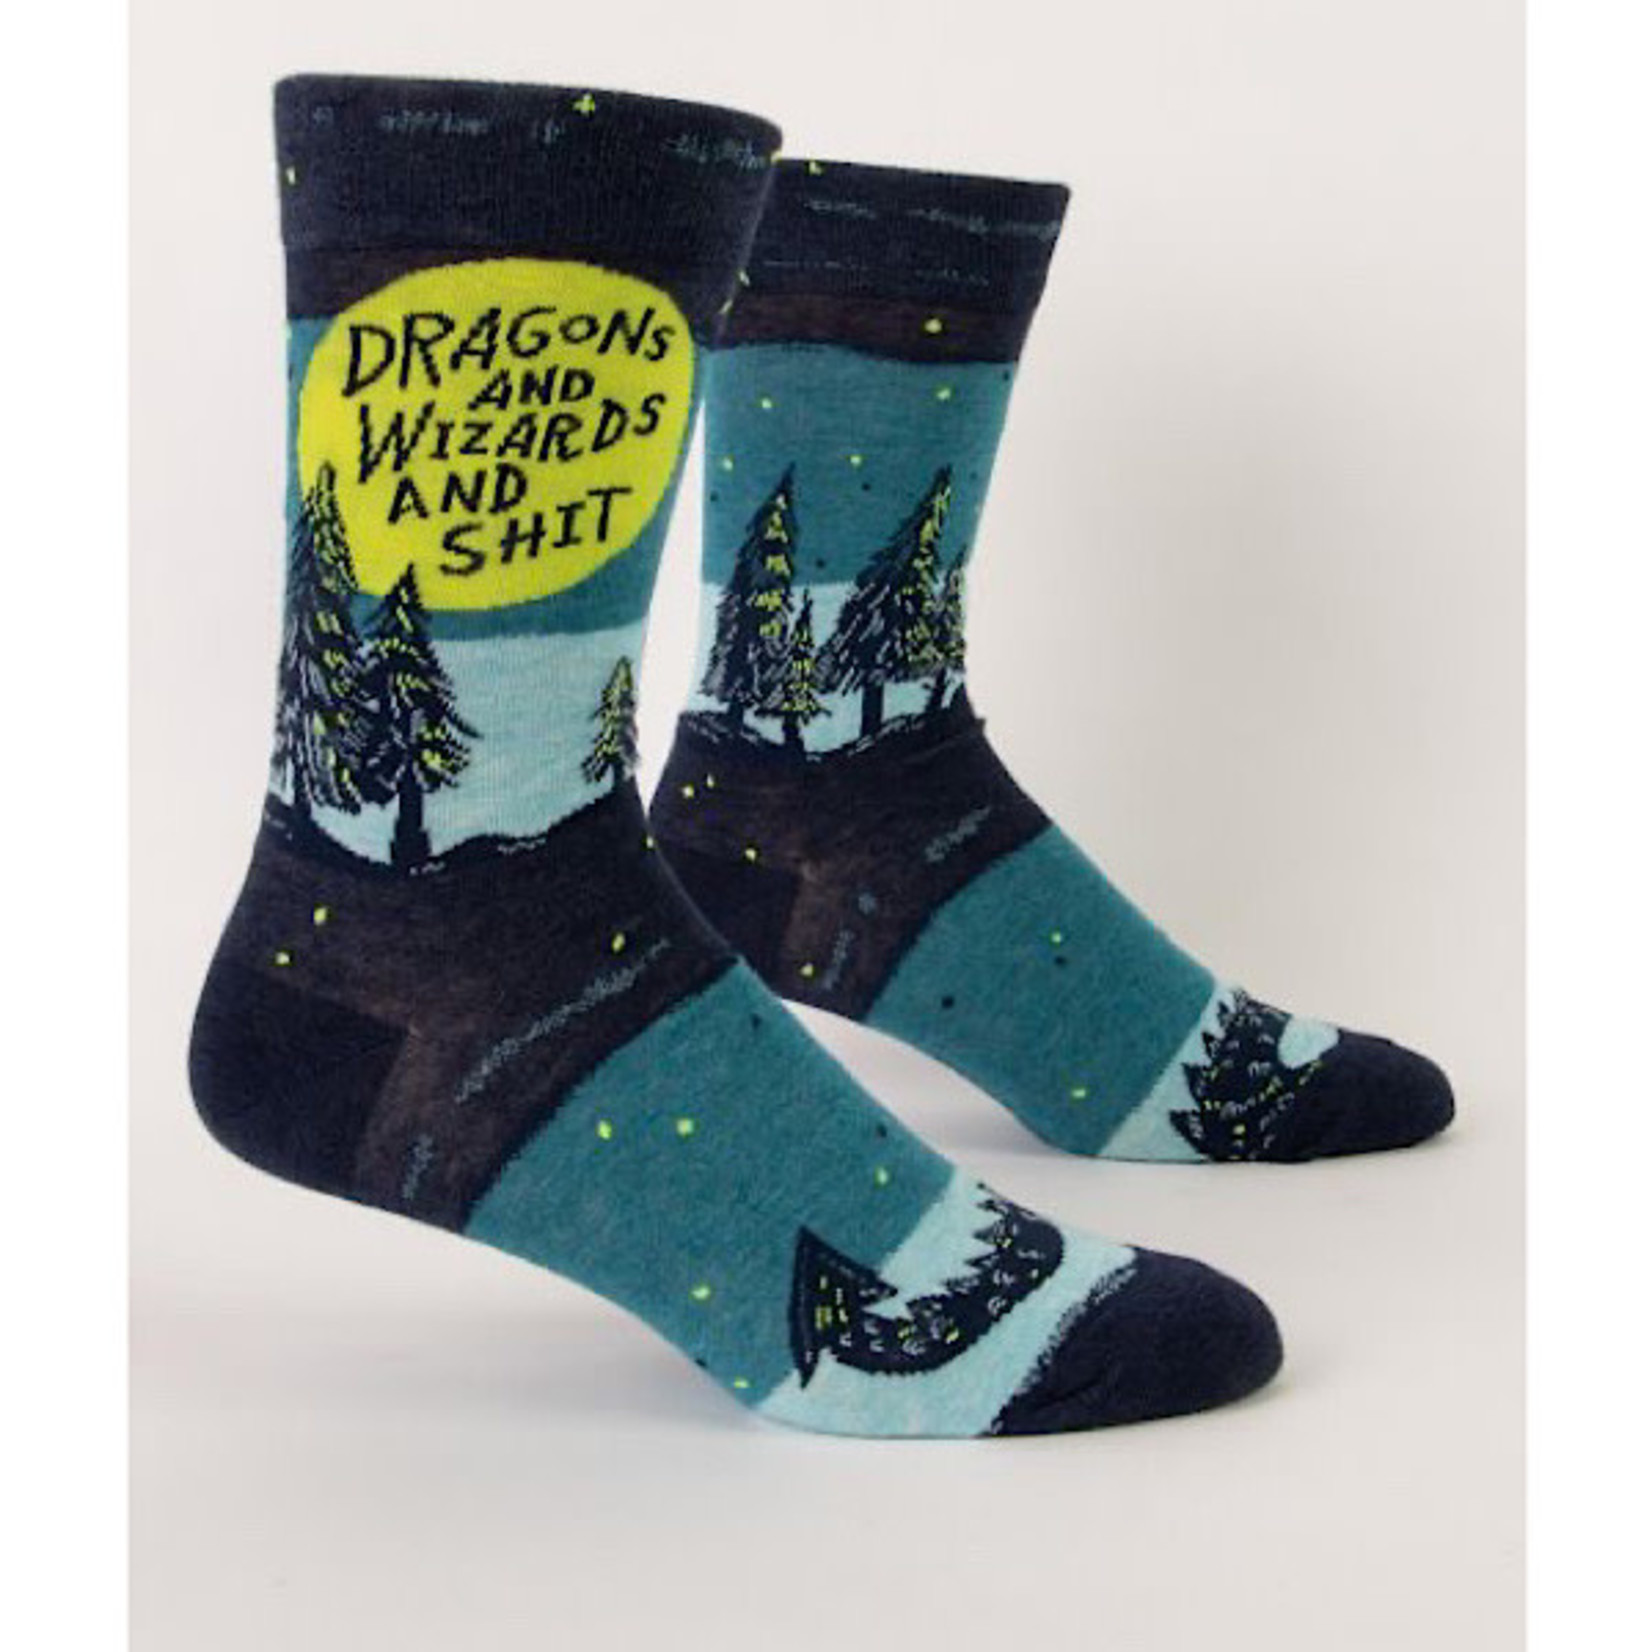 Socks (Mens) - Dragons And Wizards And Shit